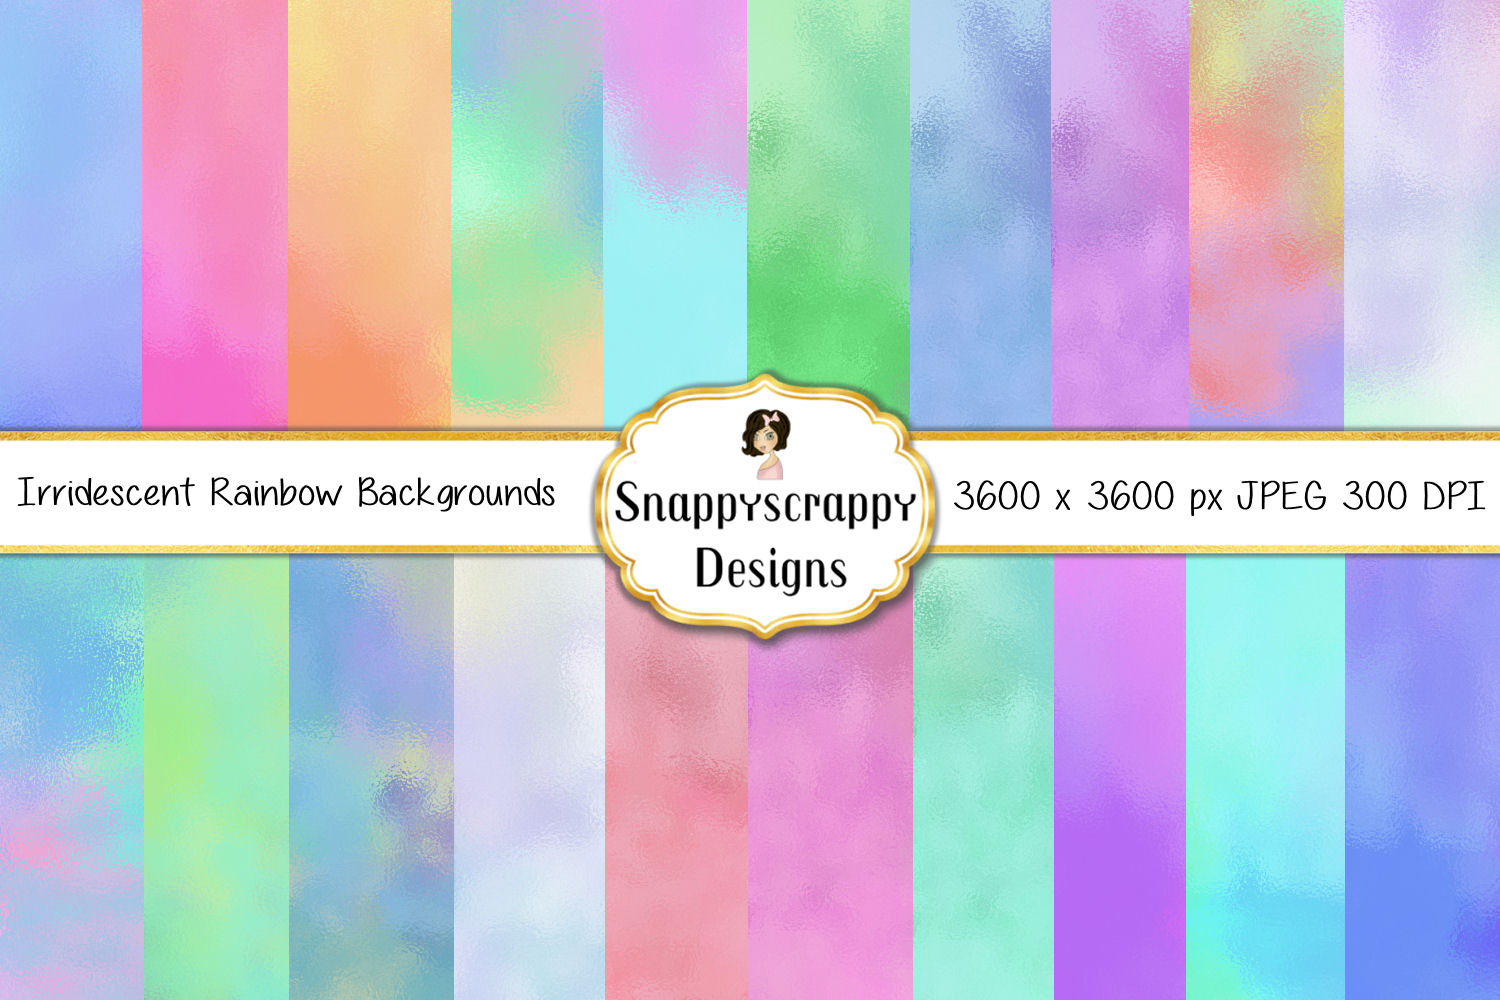 Iridescent Rainbow background Papers example image 1